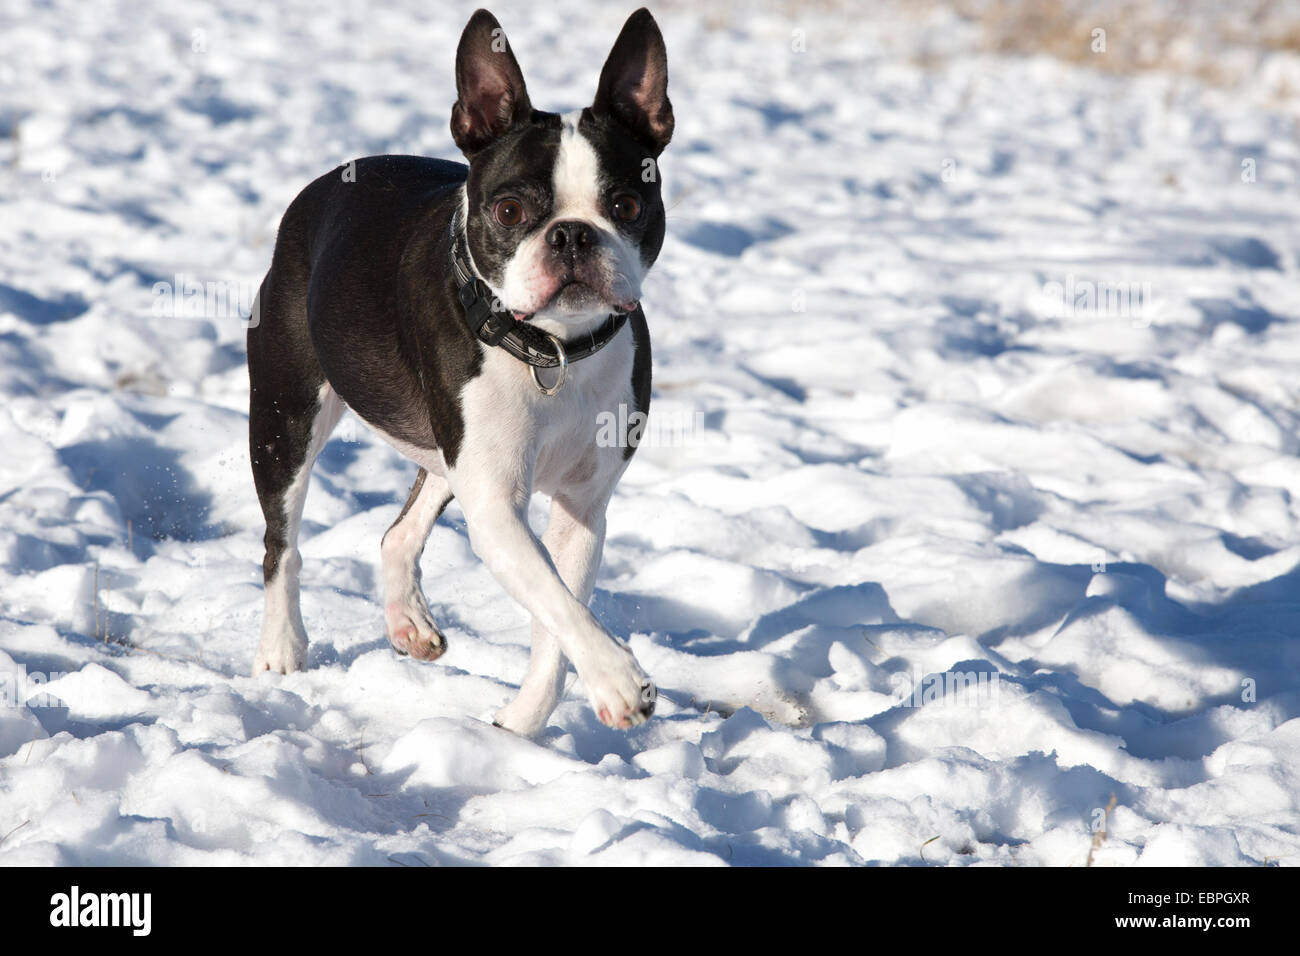 Eleven year-old Boston Terrier running in snow in off-leash dog park - Stock Image